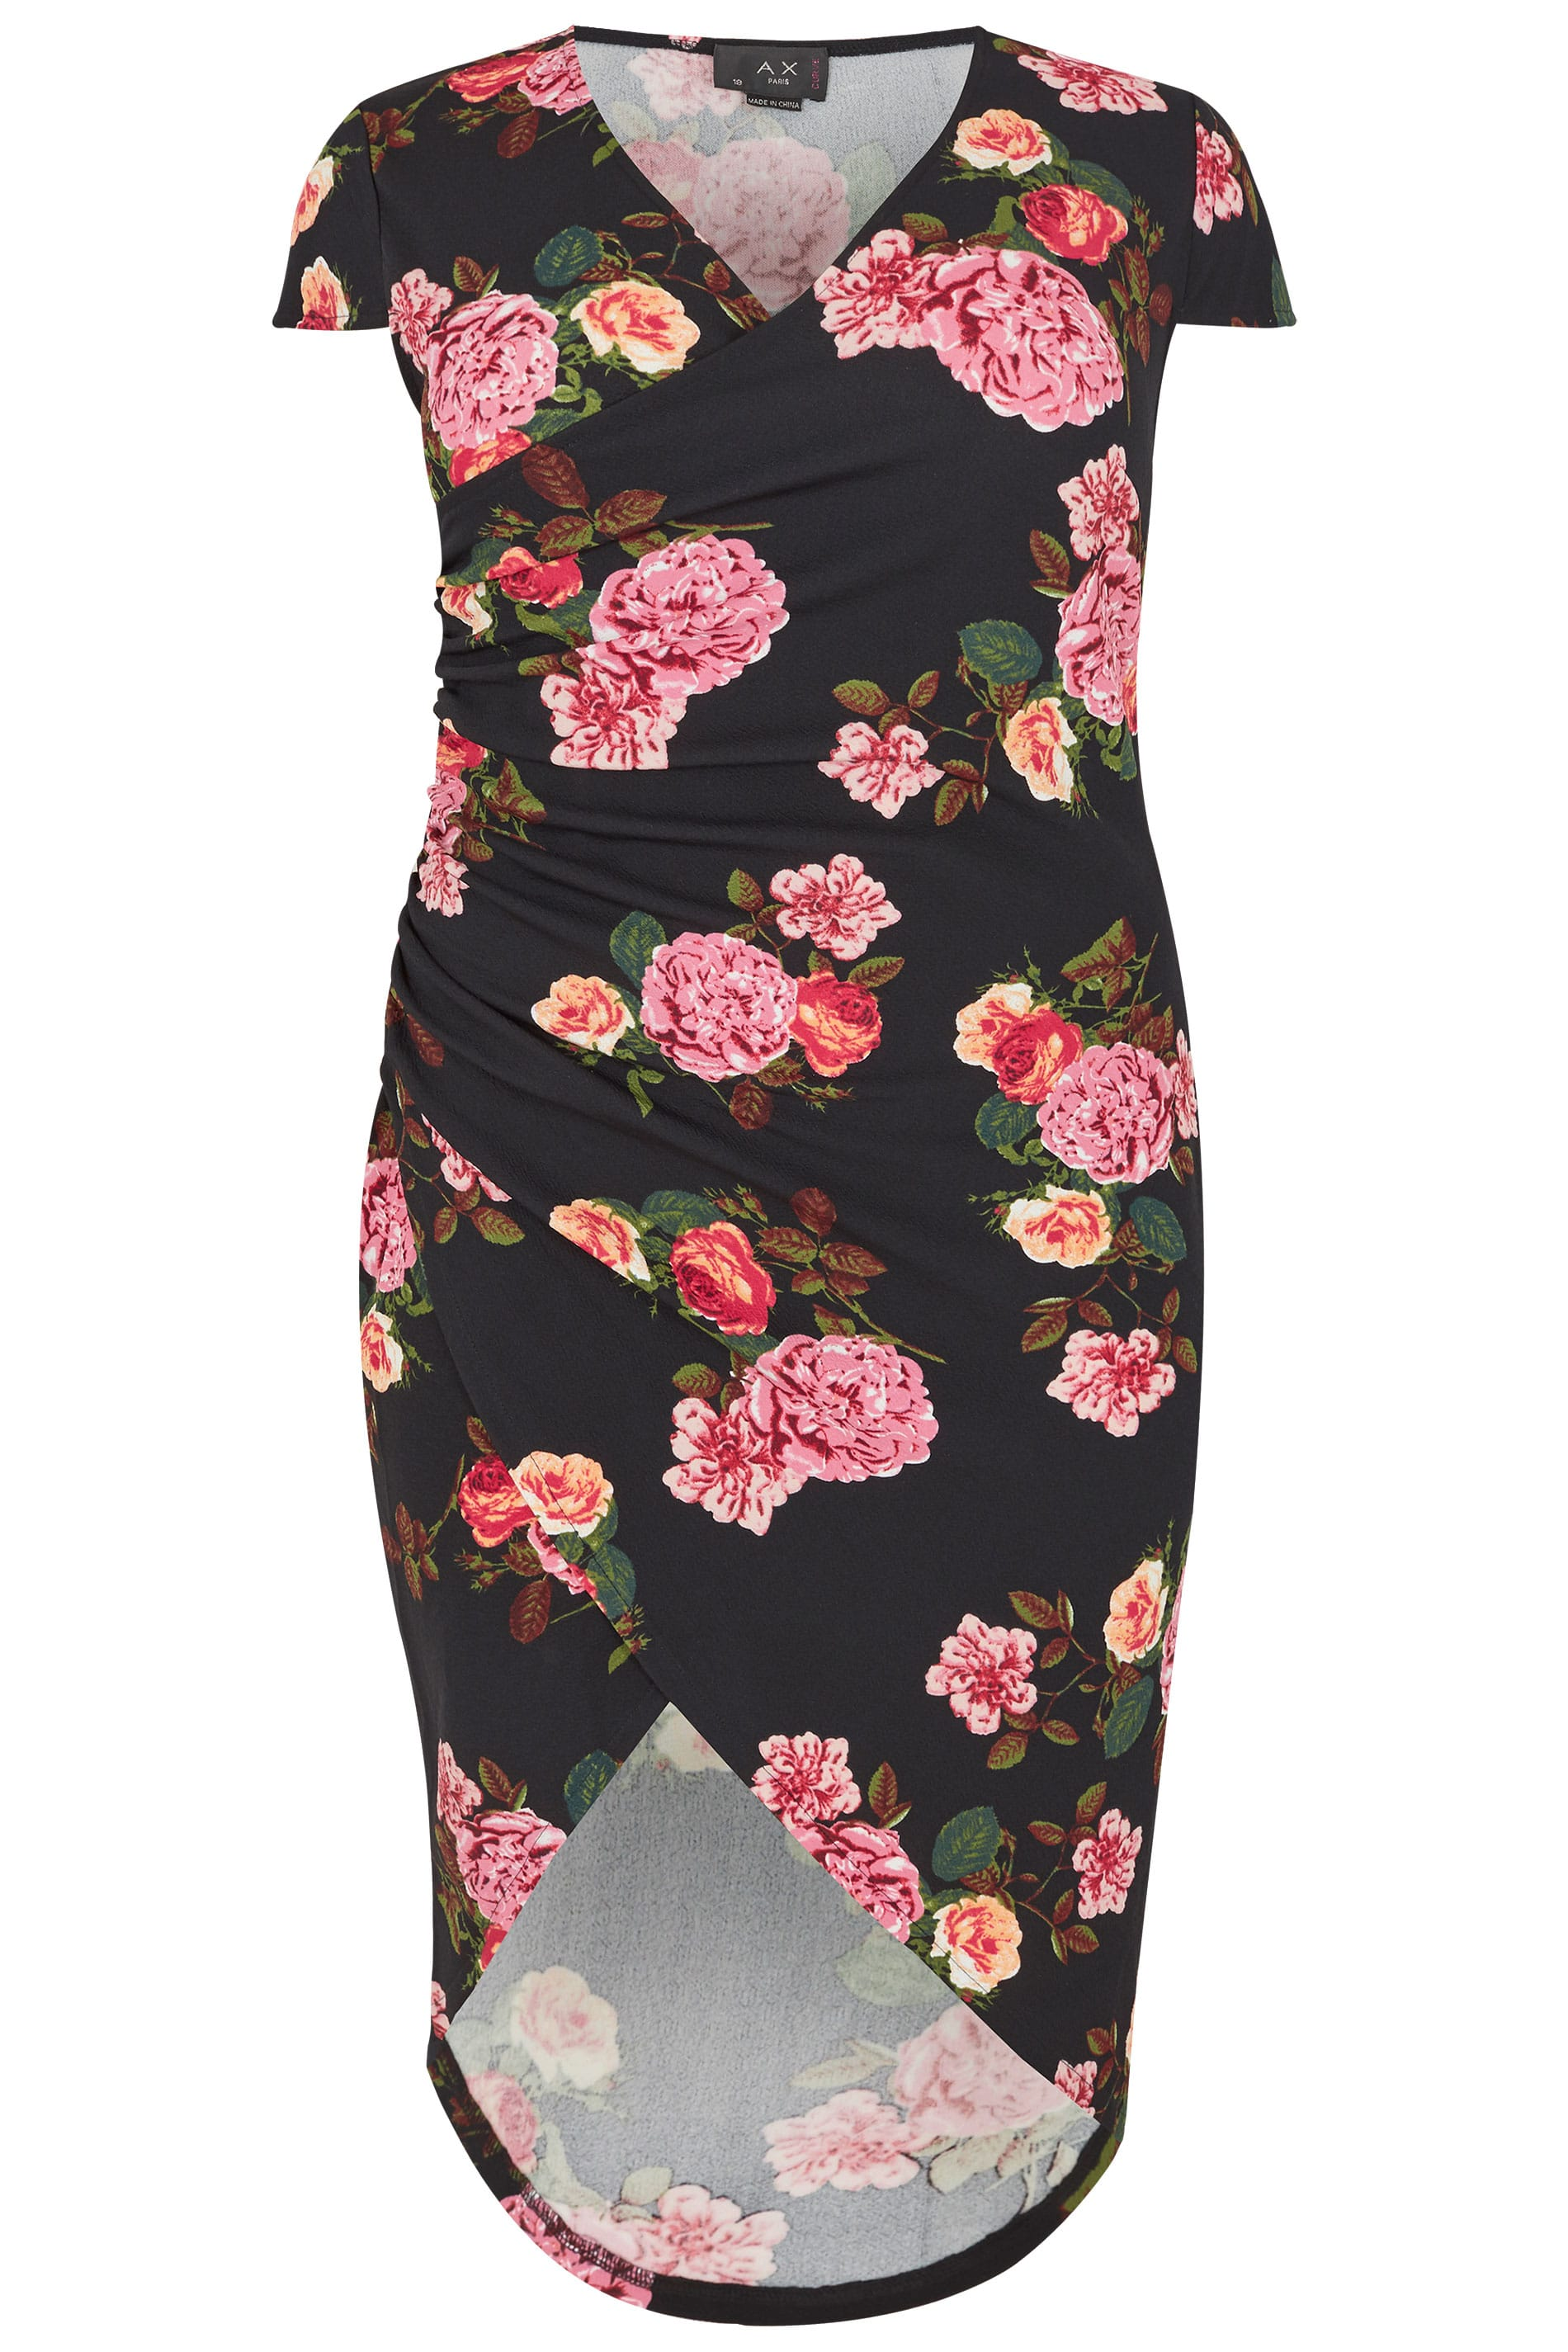 84f418d5d6fe AX PARIS Curve Black Floral Wrap Dress, Plus size 16 to 26